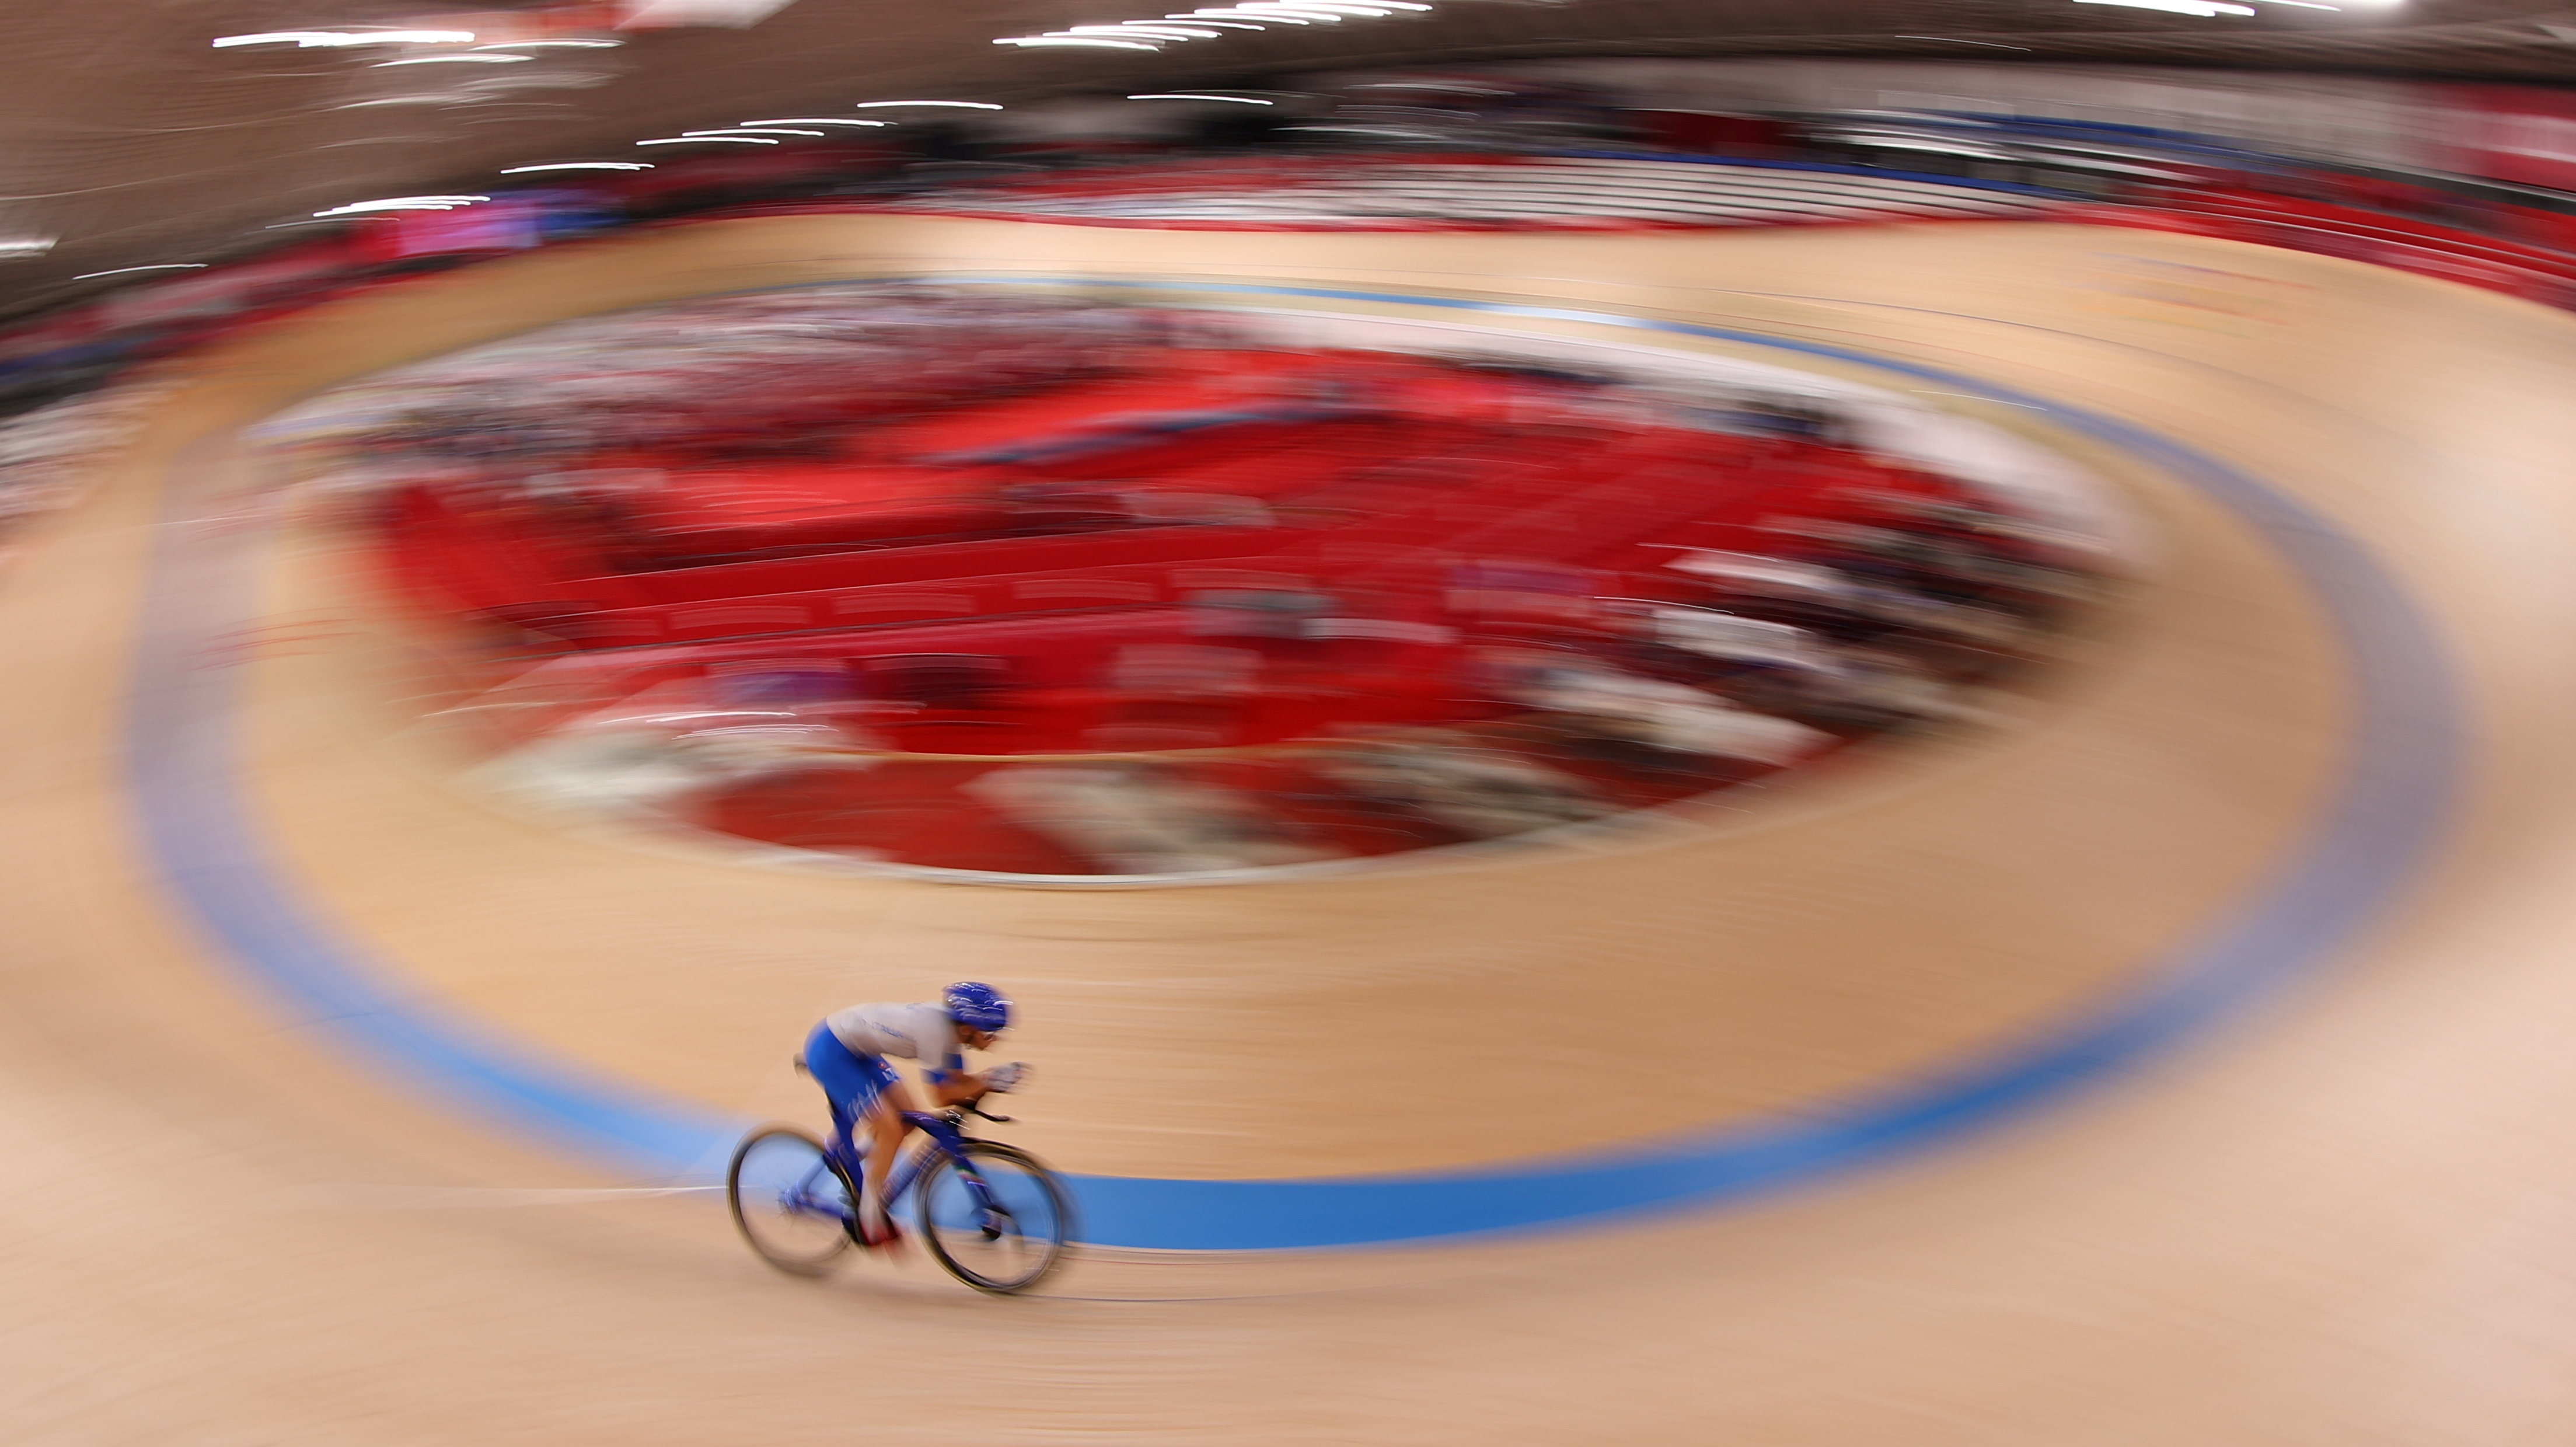 Tokyo 2020 Olympics - Cycling - Track - Women's Team Sprint - Qualification - Izu Velodrome, Shizuoka, Japan - August 2, 2021. A cyclist warms up before the event. REUTERS/Kacper Pempel